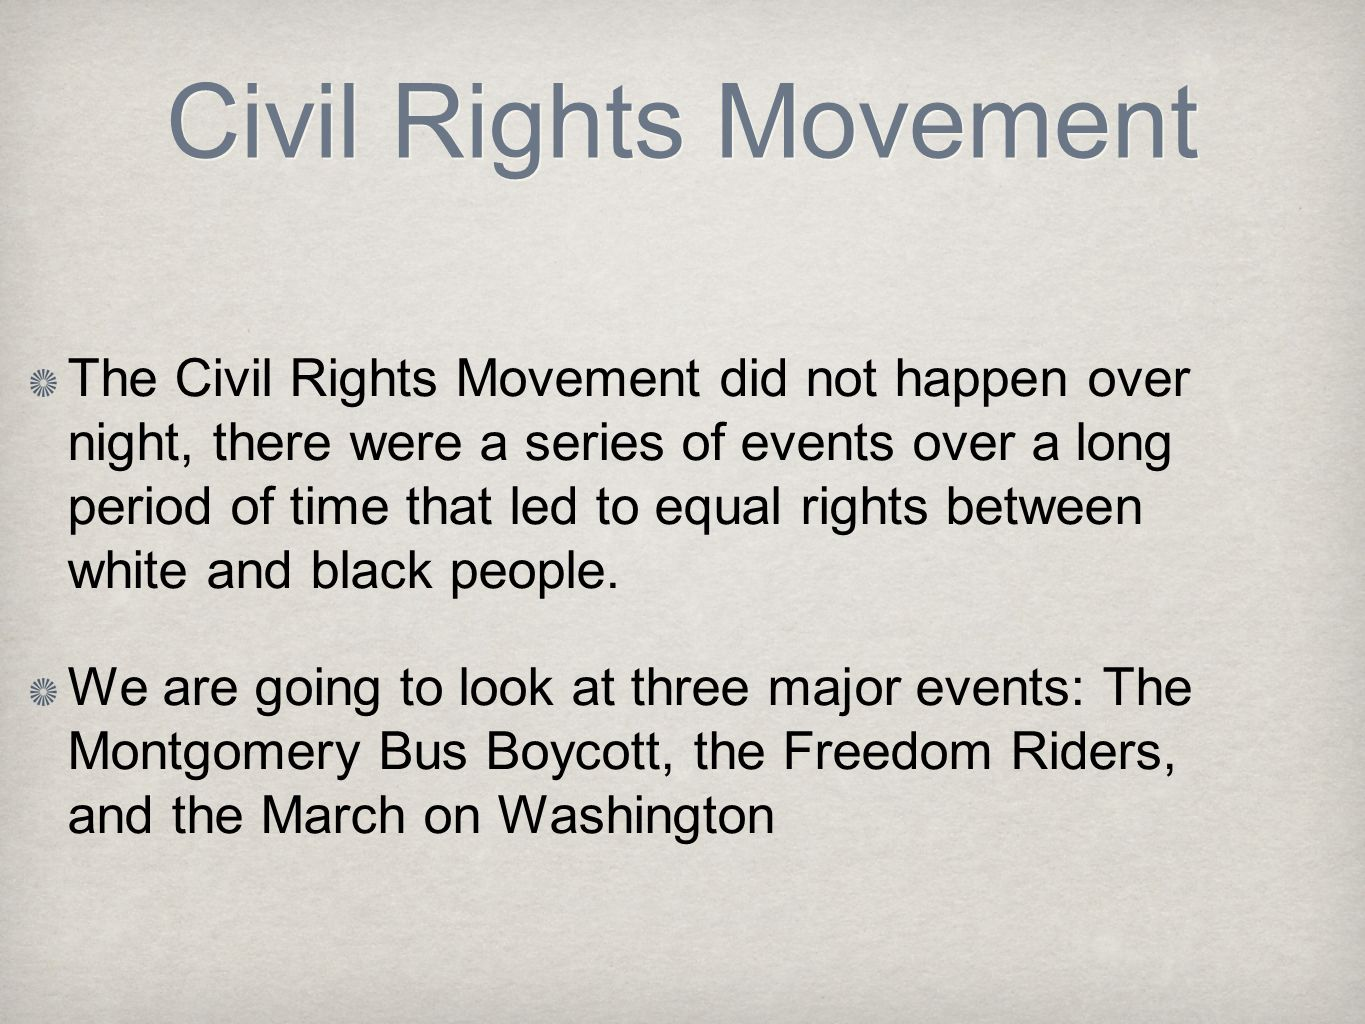 the significant events and persons in the civil rights movement Civil rights: timeline of events in response to the civil rights movement, but there were many significant occurrences affecting civil rights that proceeded.